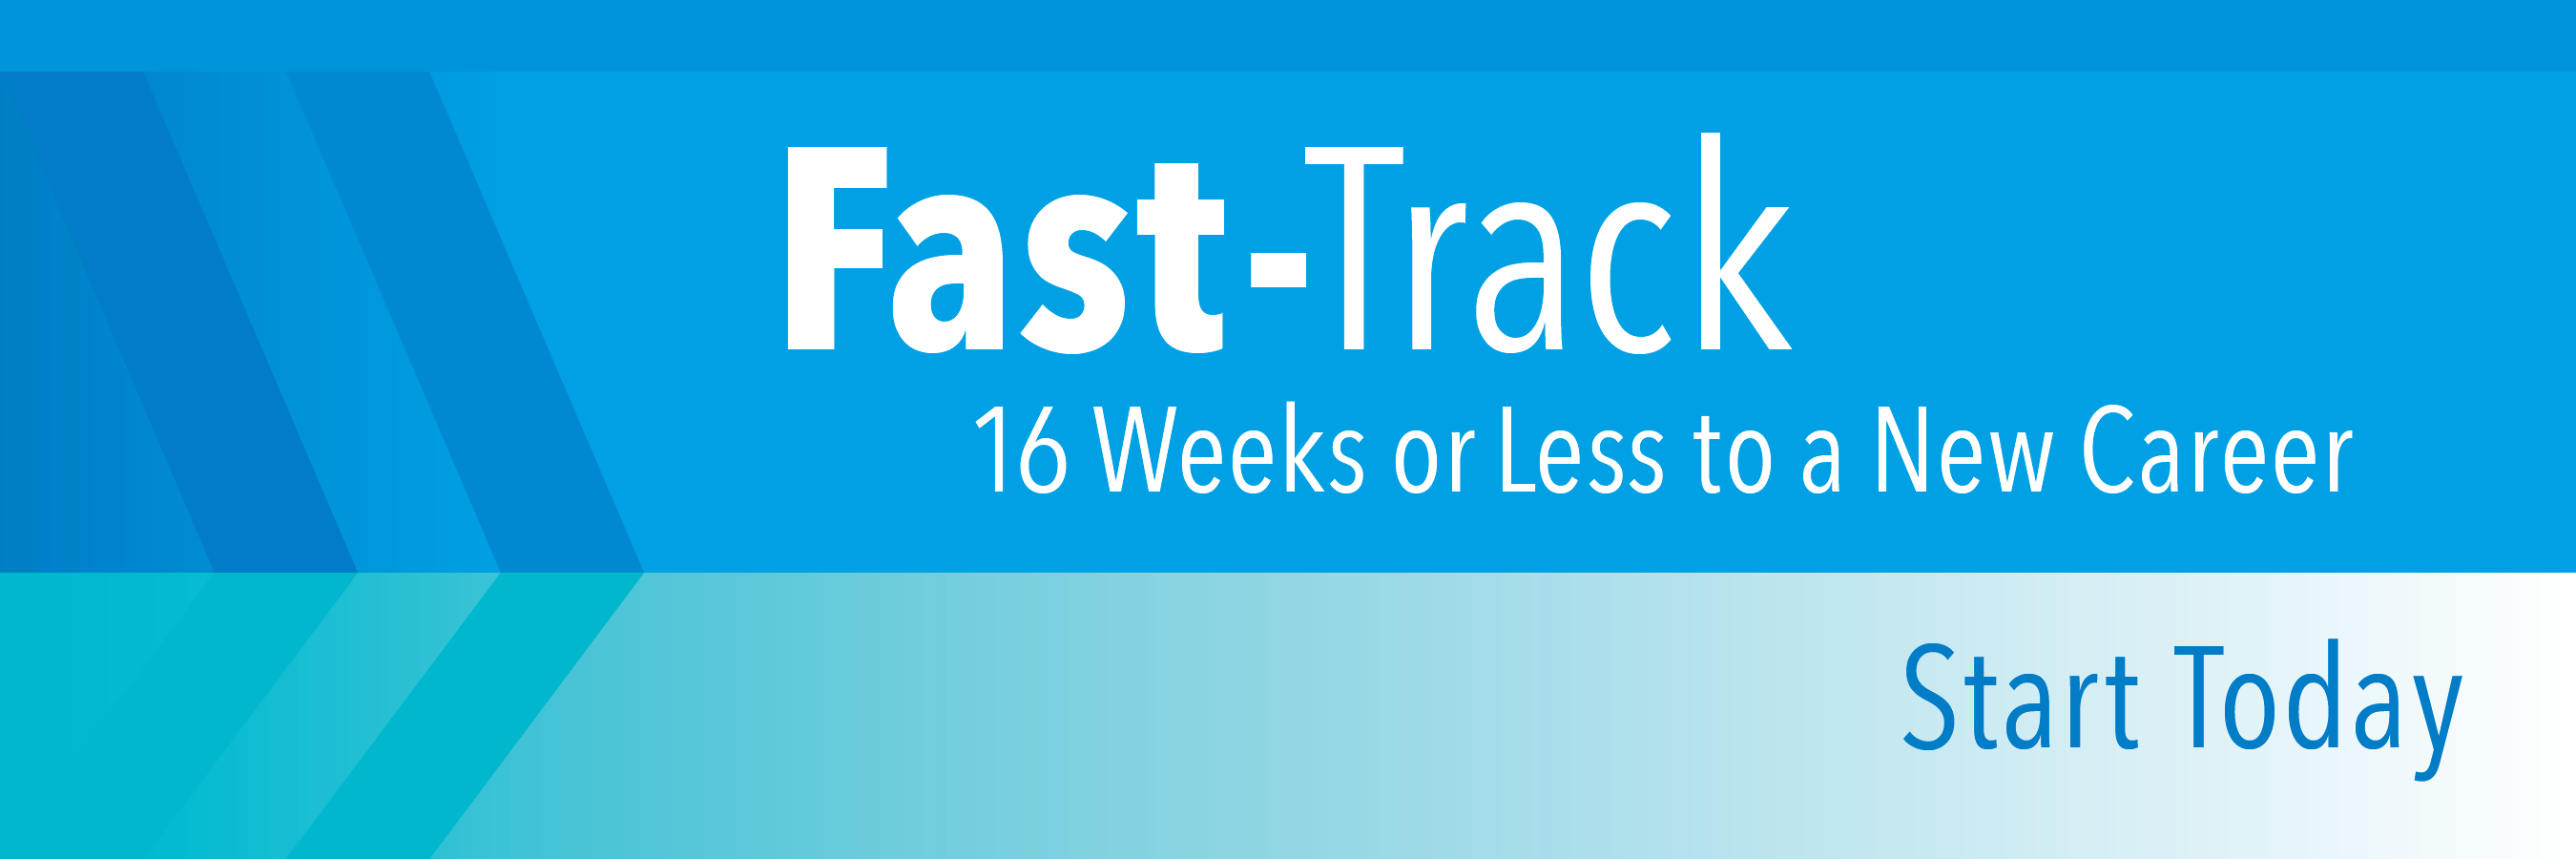 Fast-Track. 16 weeks or less to a new career. Start Today